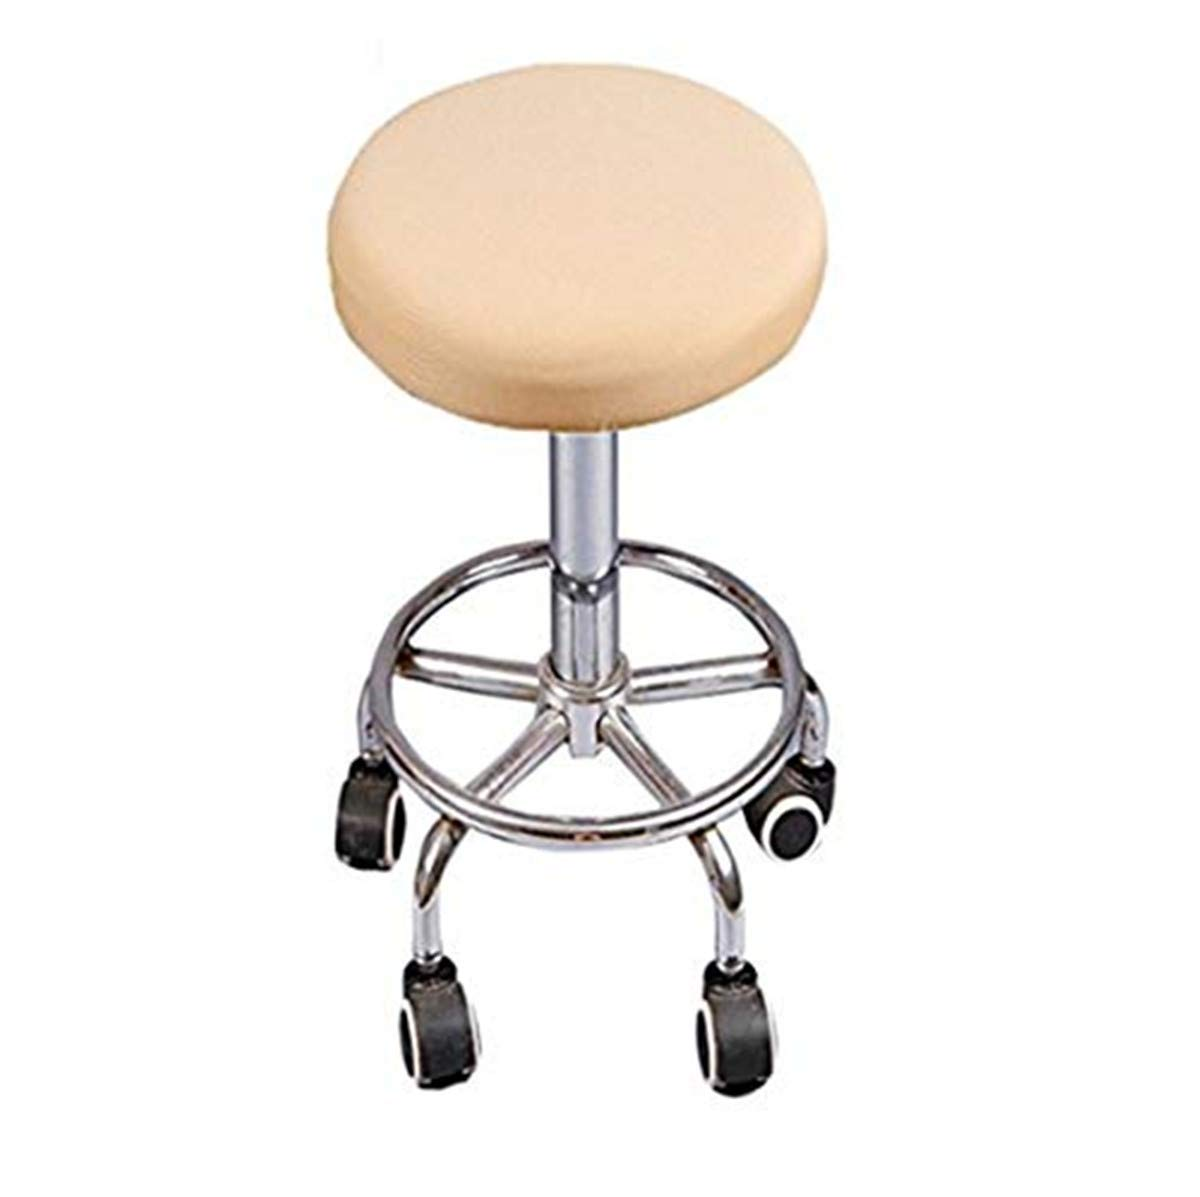 Soft Stretchable Round Bar Stool Chair Covers Protectors 14 Inch Pack of 2 (Champagne) by G-Champsolar